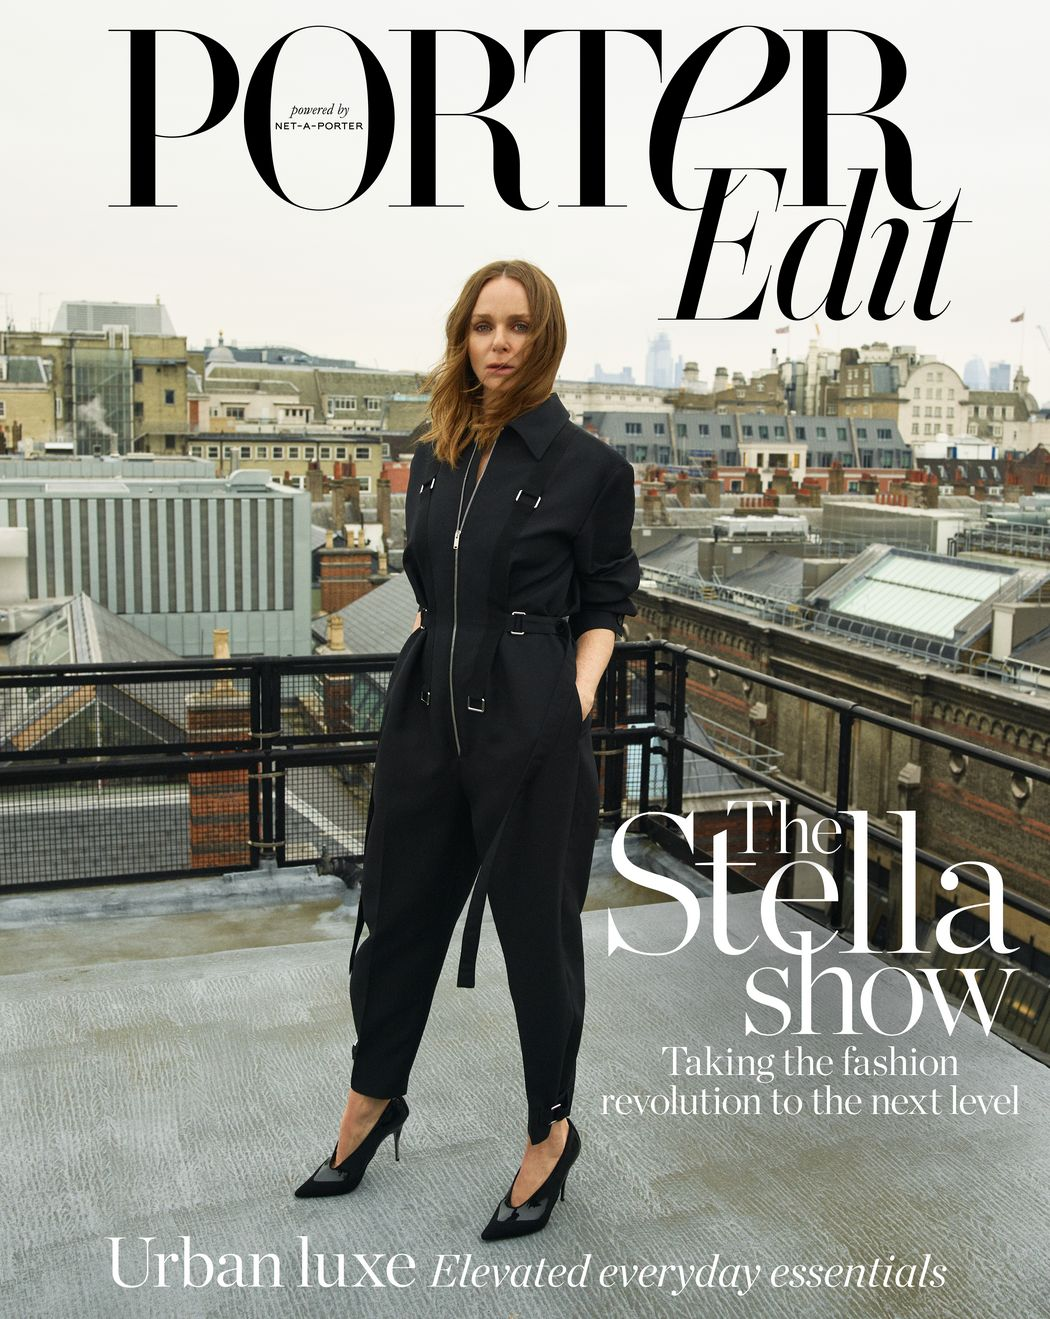 Stella MCCartney wears a jumpsuit from her own collection. Image by Matthew Sprout for cover of Porter Edit, June 21, 2019.